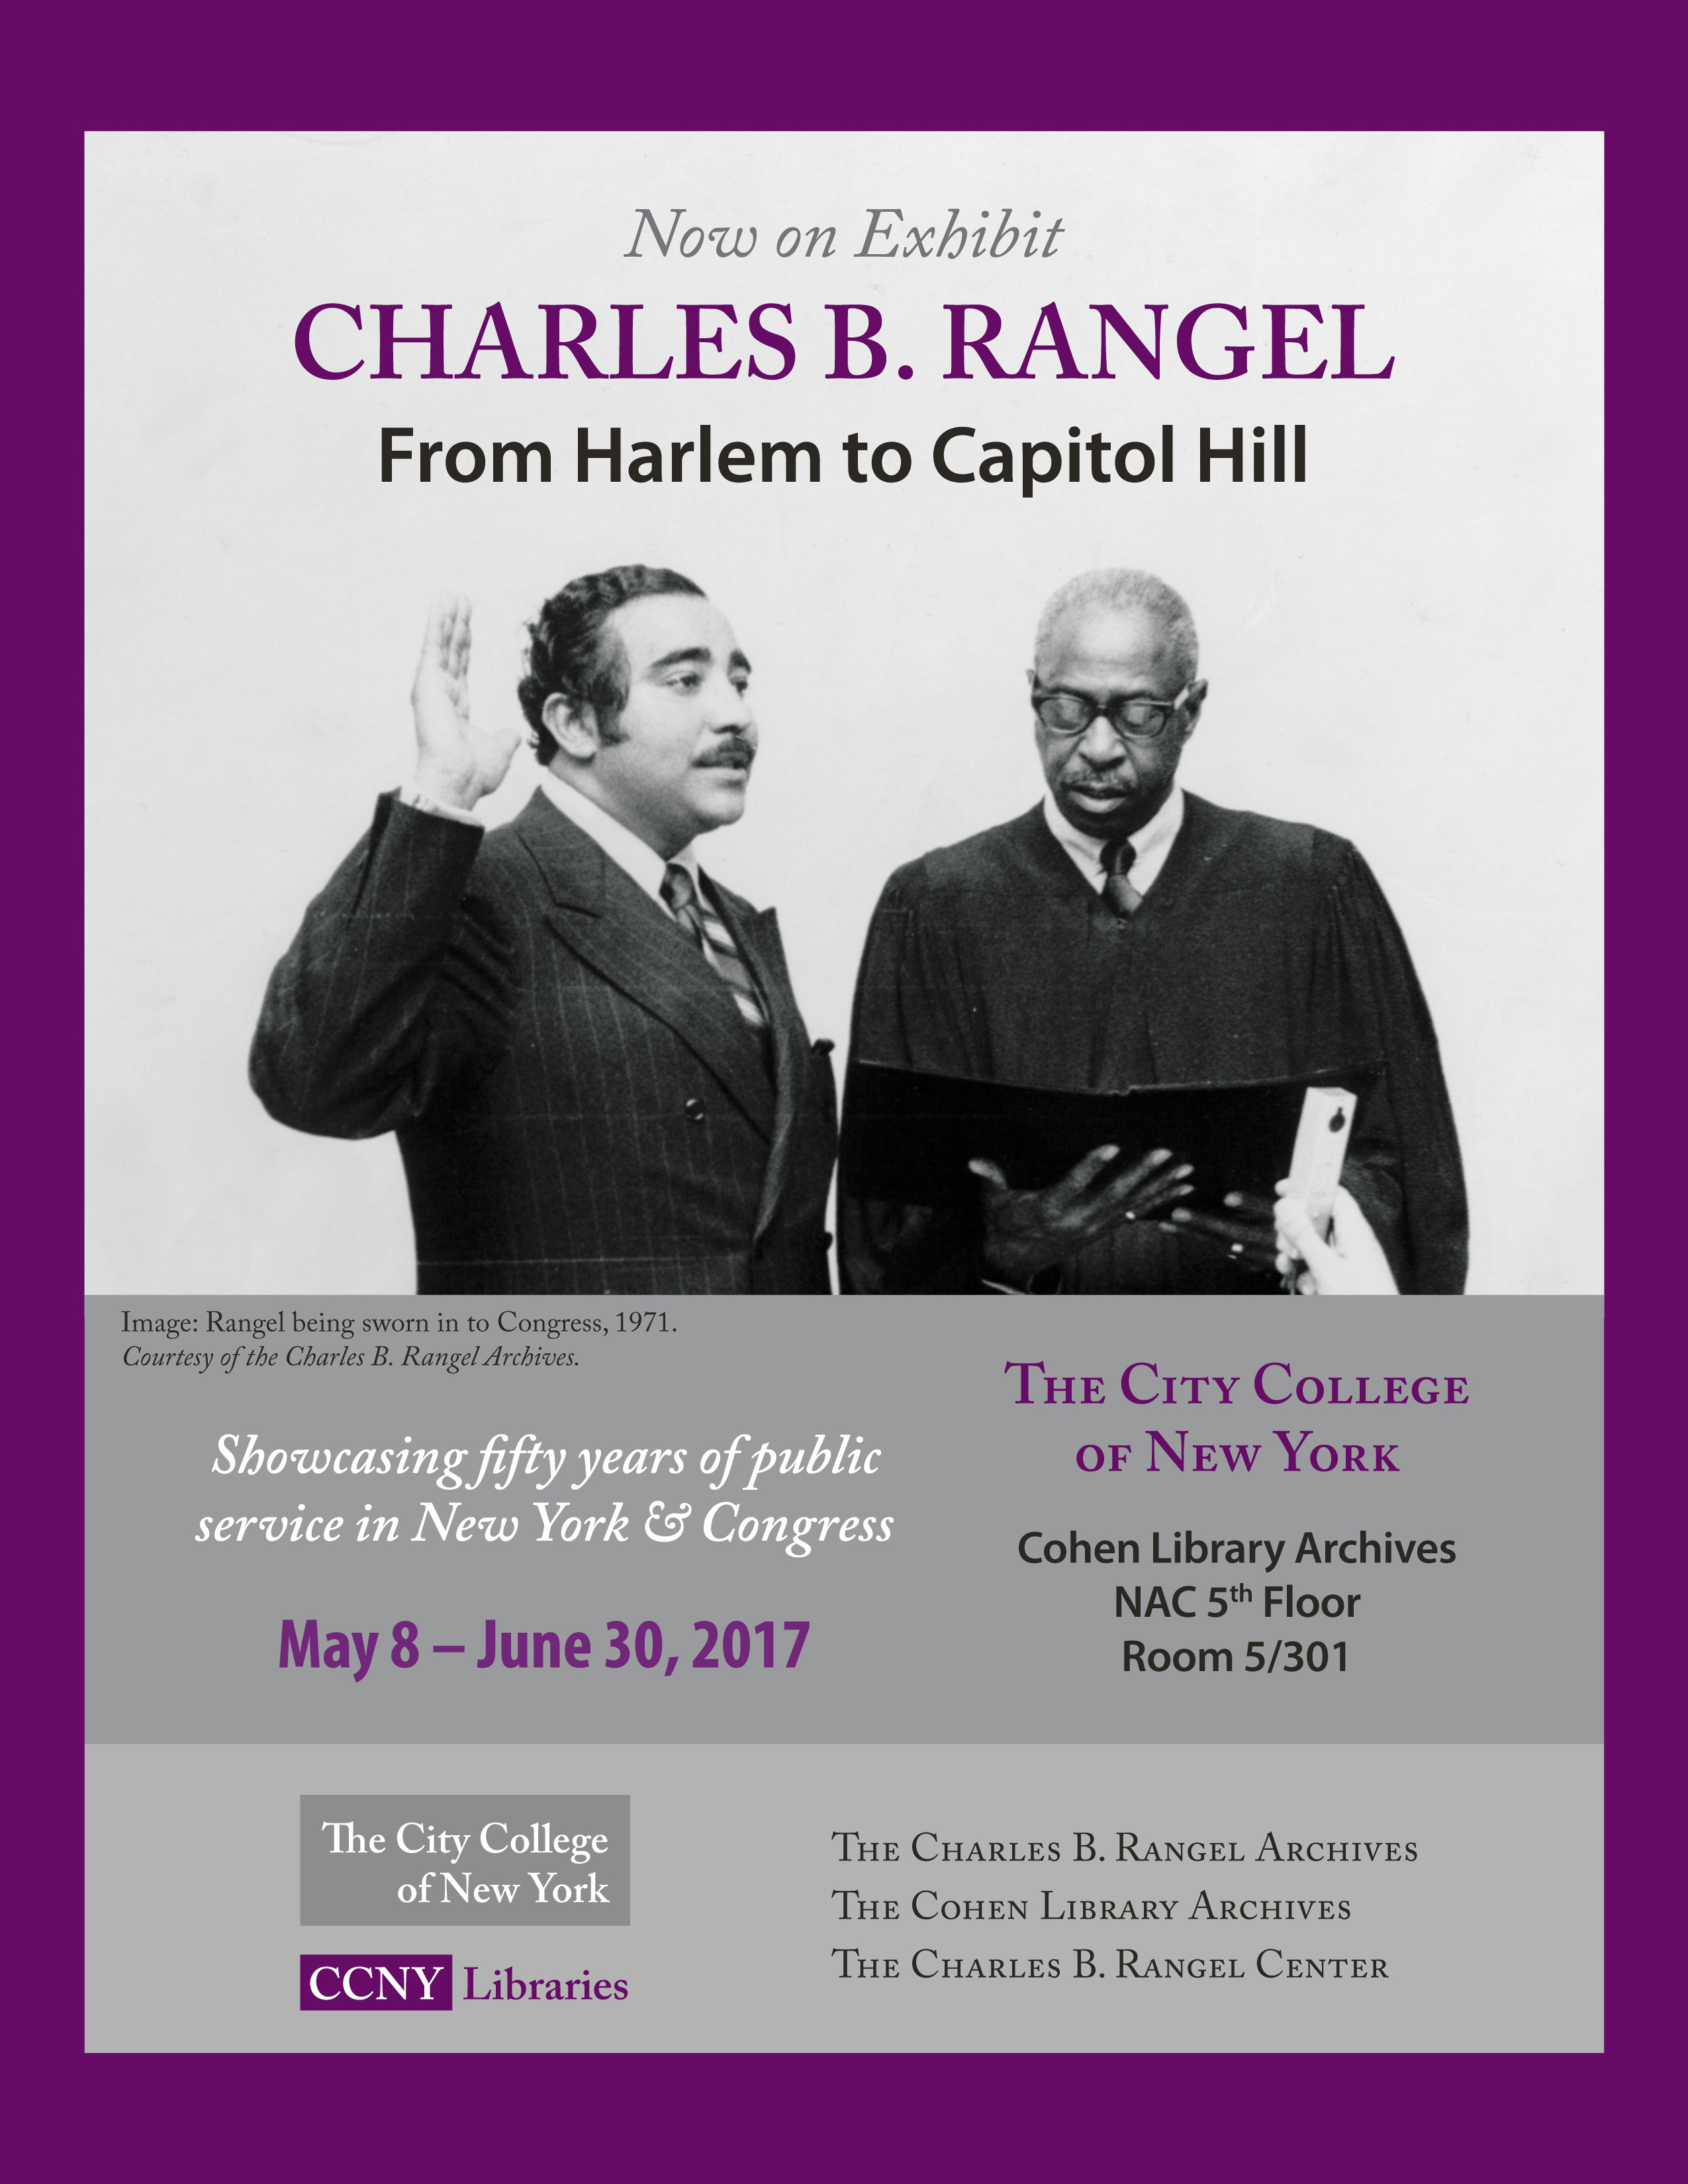 Promotional poster for the Charles B. Rangel exhibit